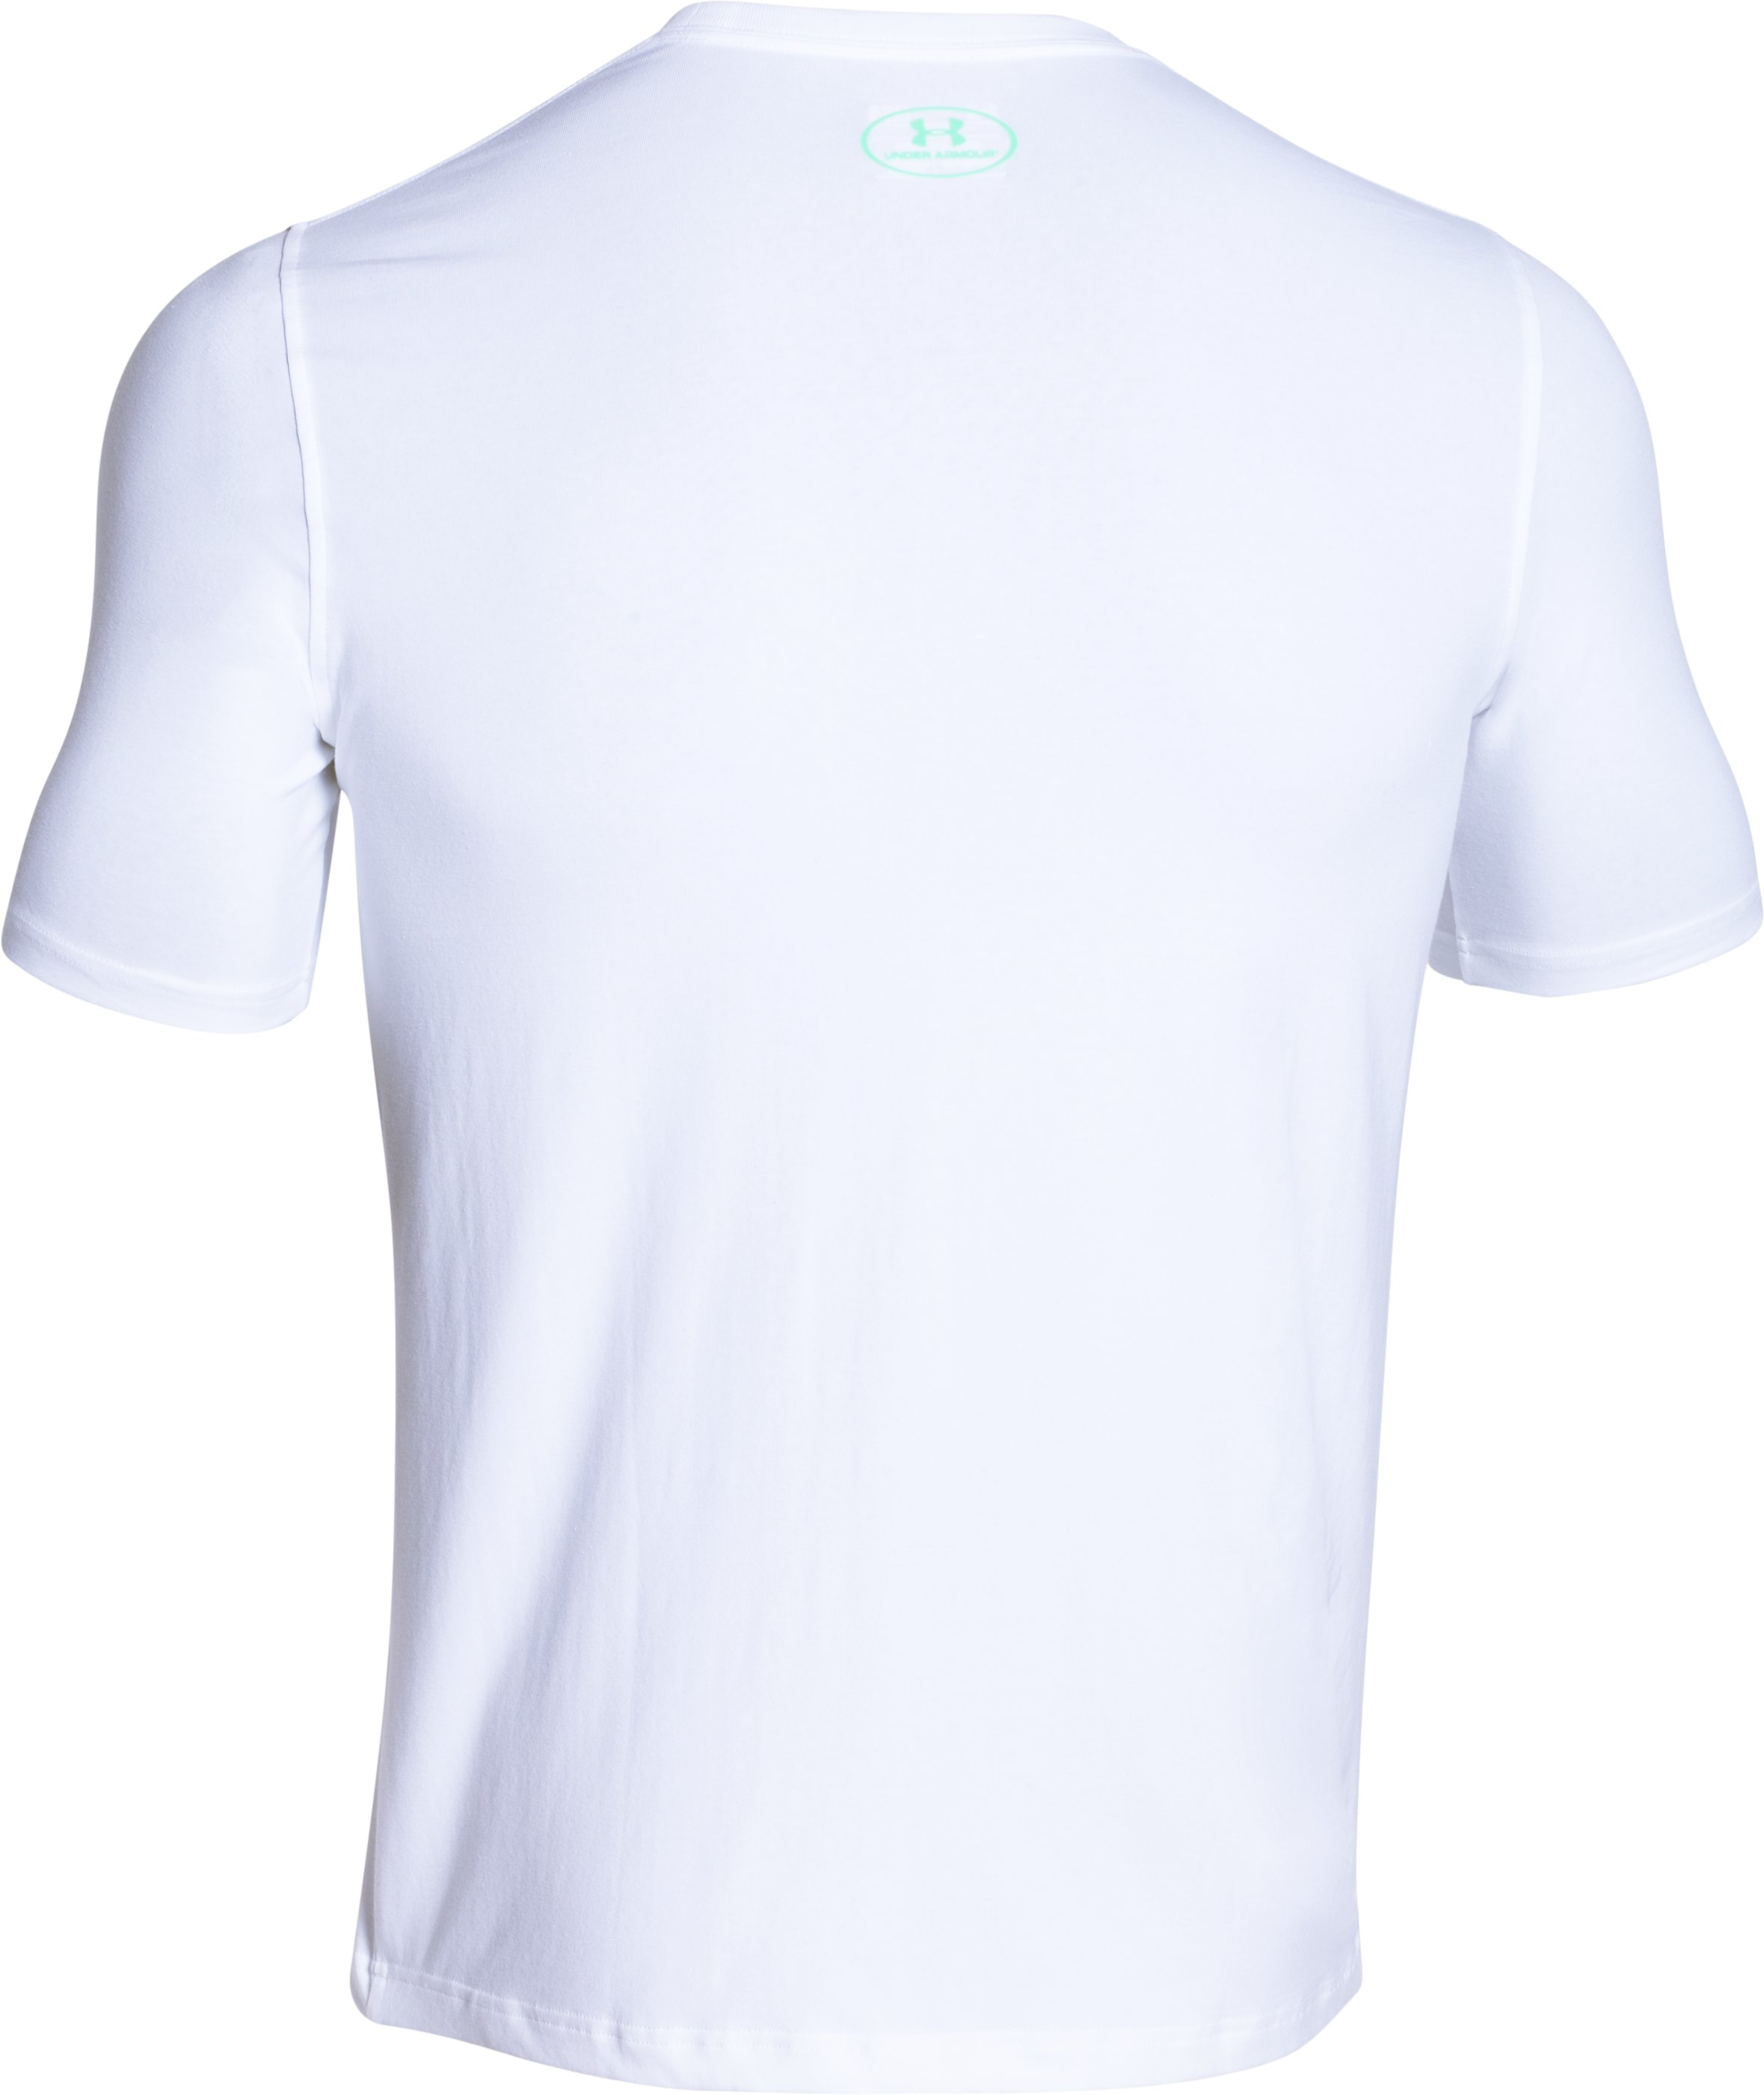 Men's SC30 State Of Grind T-Shirt, White